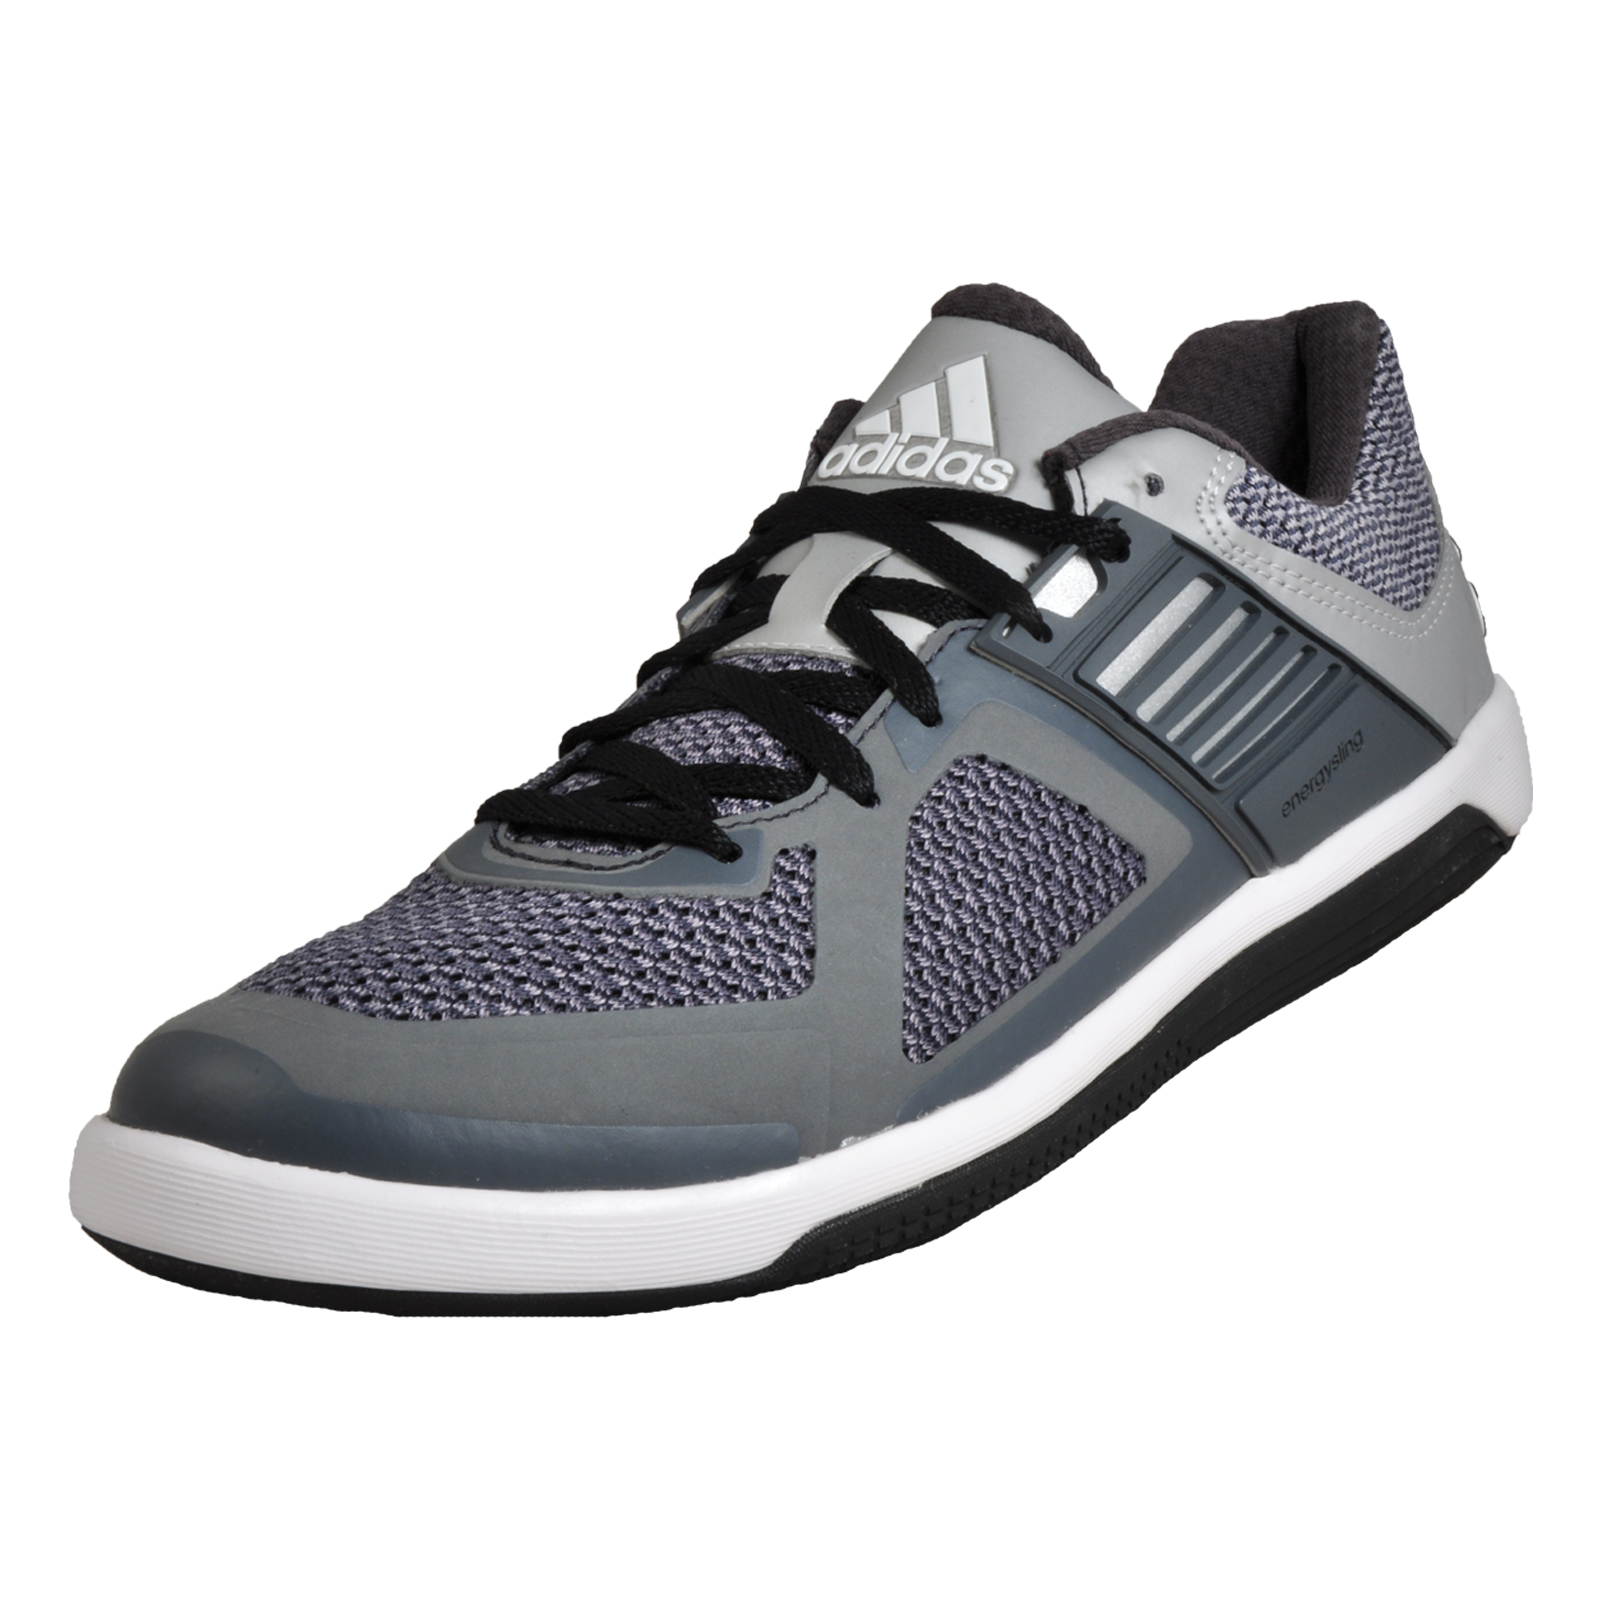 Learned Men Air Cushion Sneaker Outdoor Running Shoes Designer Sneakers Man Athletic Walking Shoes Gym Trainers Sports Shoes Male To Assure Years Of Trouble-Free Service Running Shoes Sneakers